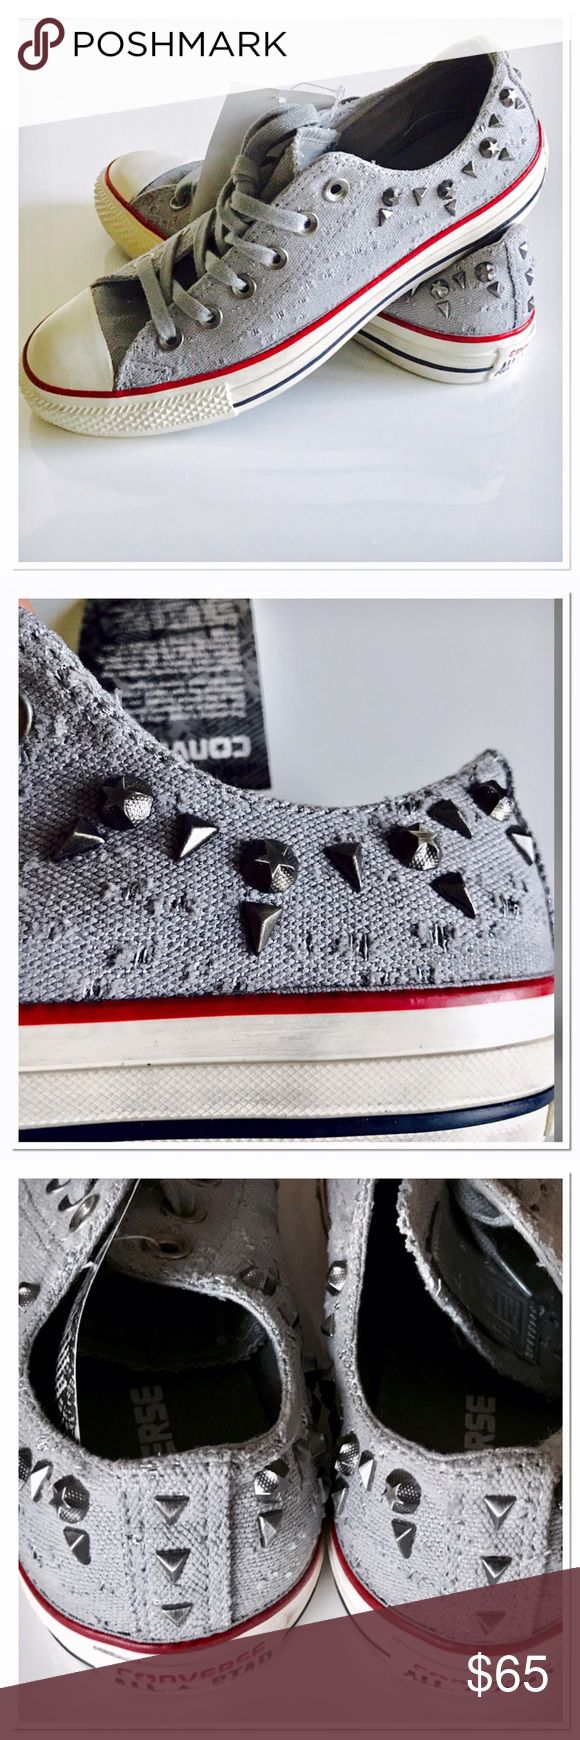 HPNWT Vintage look studded Converse Those are so cool. Unfortunately to big for me! All the distressed part is done by Converse! Please read tag. NWT!!!!!! ❣️HP❣️Best in Shoes❣️ Converse Shoes Sneakers